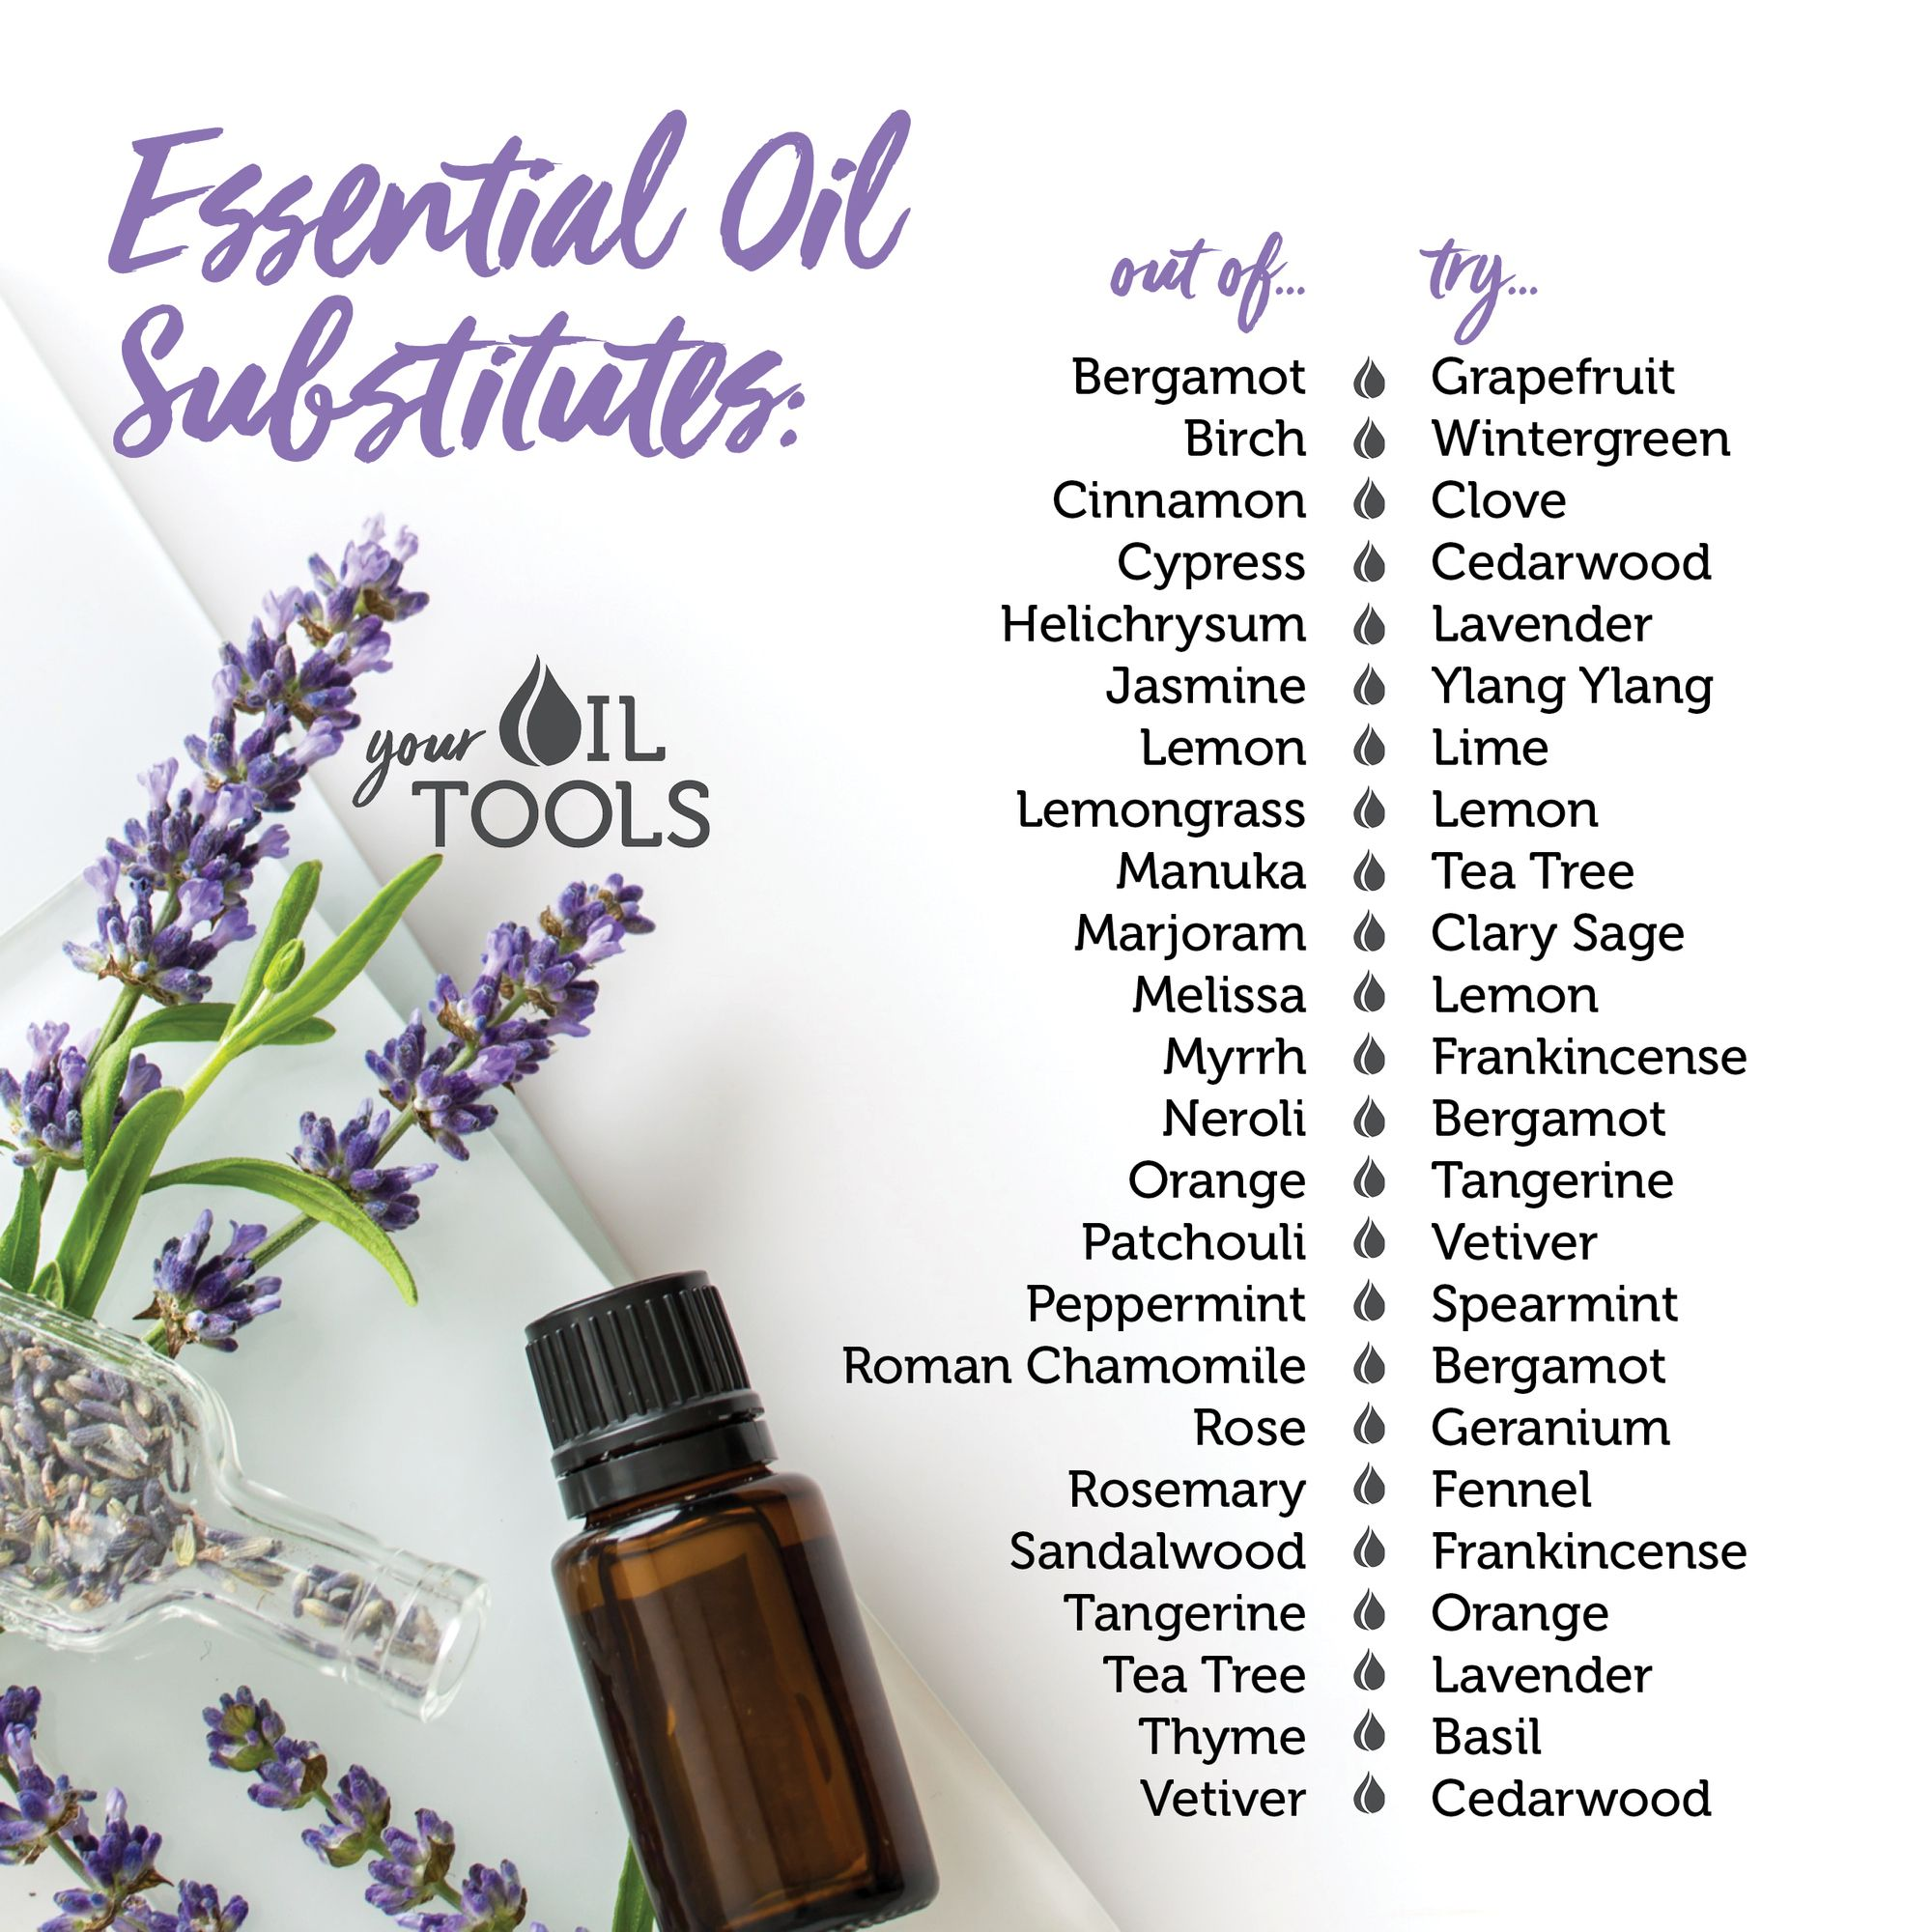 If You Re Out Of One Essential Oil Don T Worry This Chart Has Substitutes That You Can Use Essential Oils Roman Chamomile Essential Oil Neroli Essential Oil